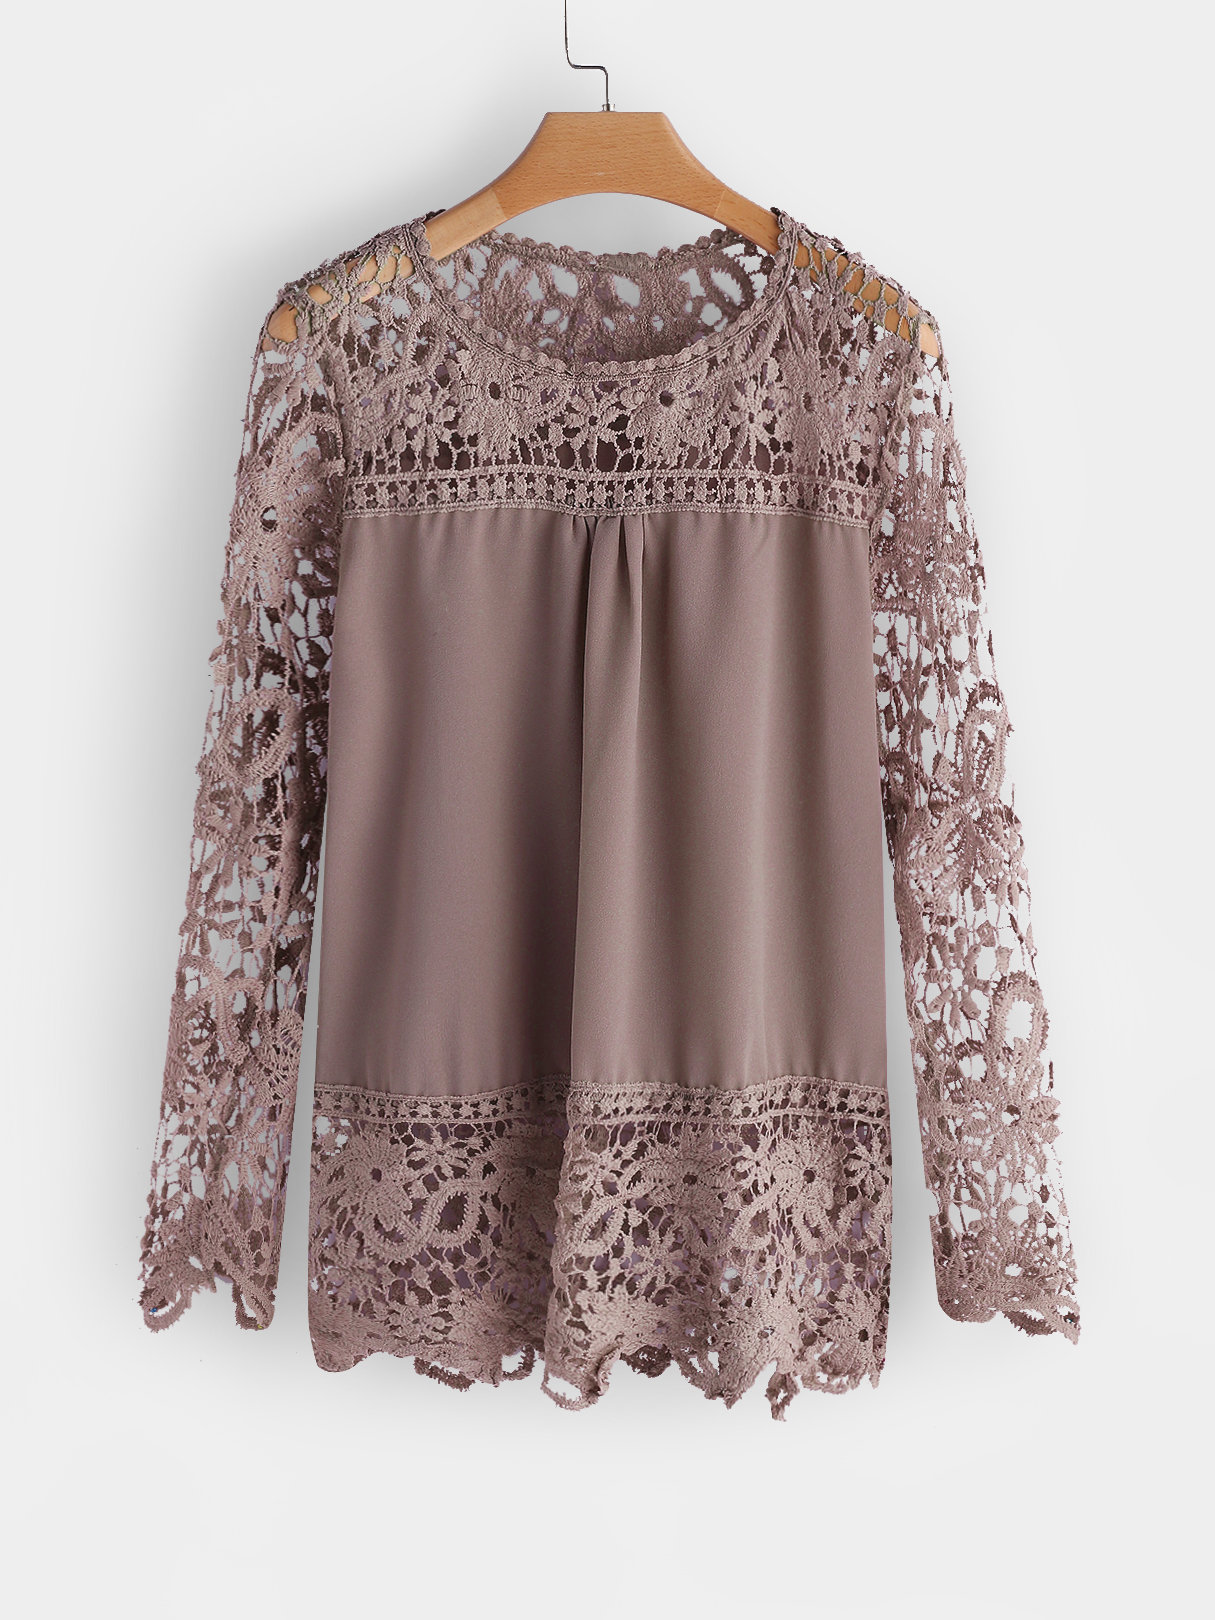 Khaki See-through Lace Round Neck Long Sleeves Top